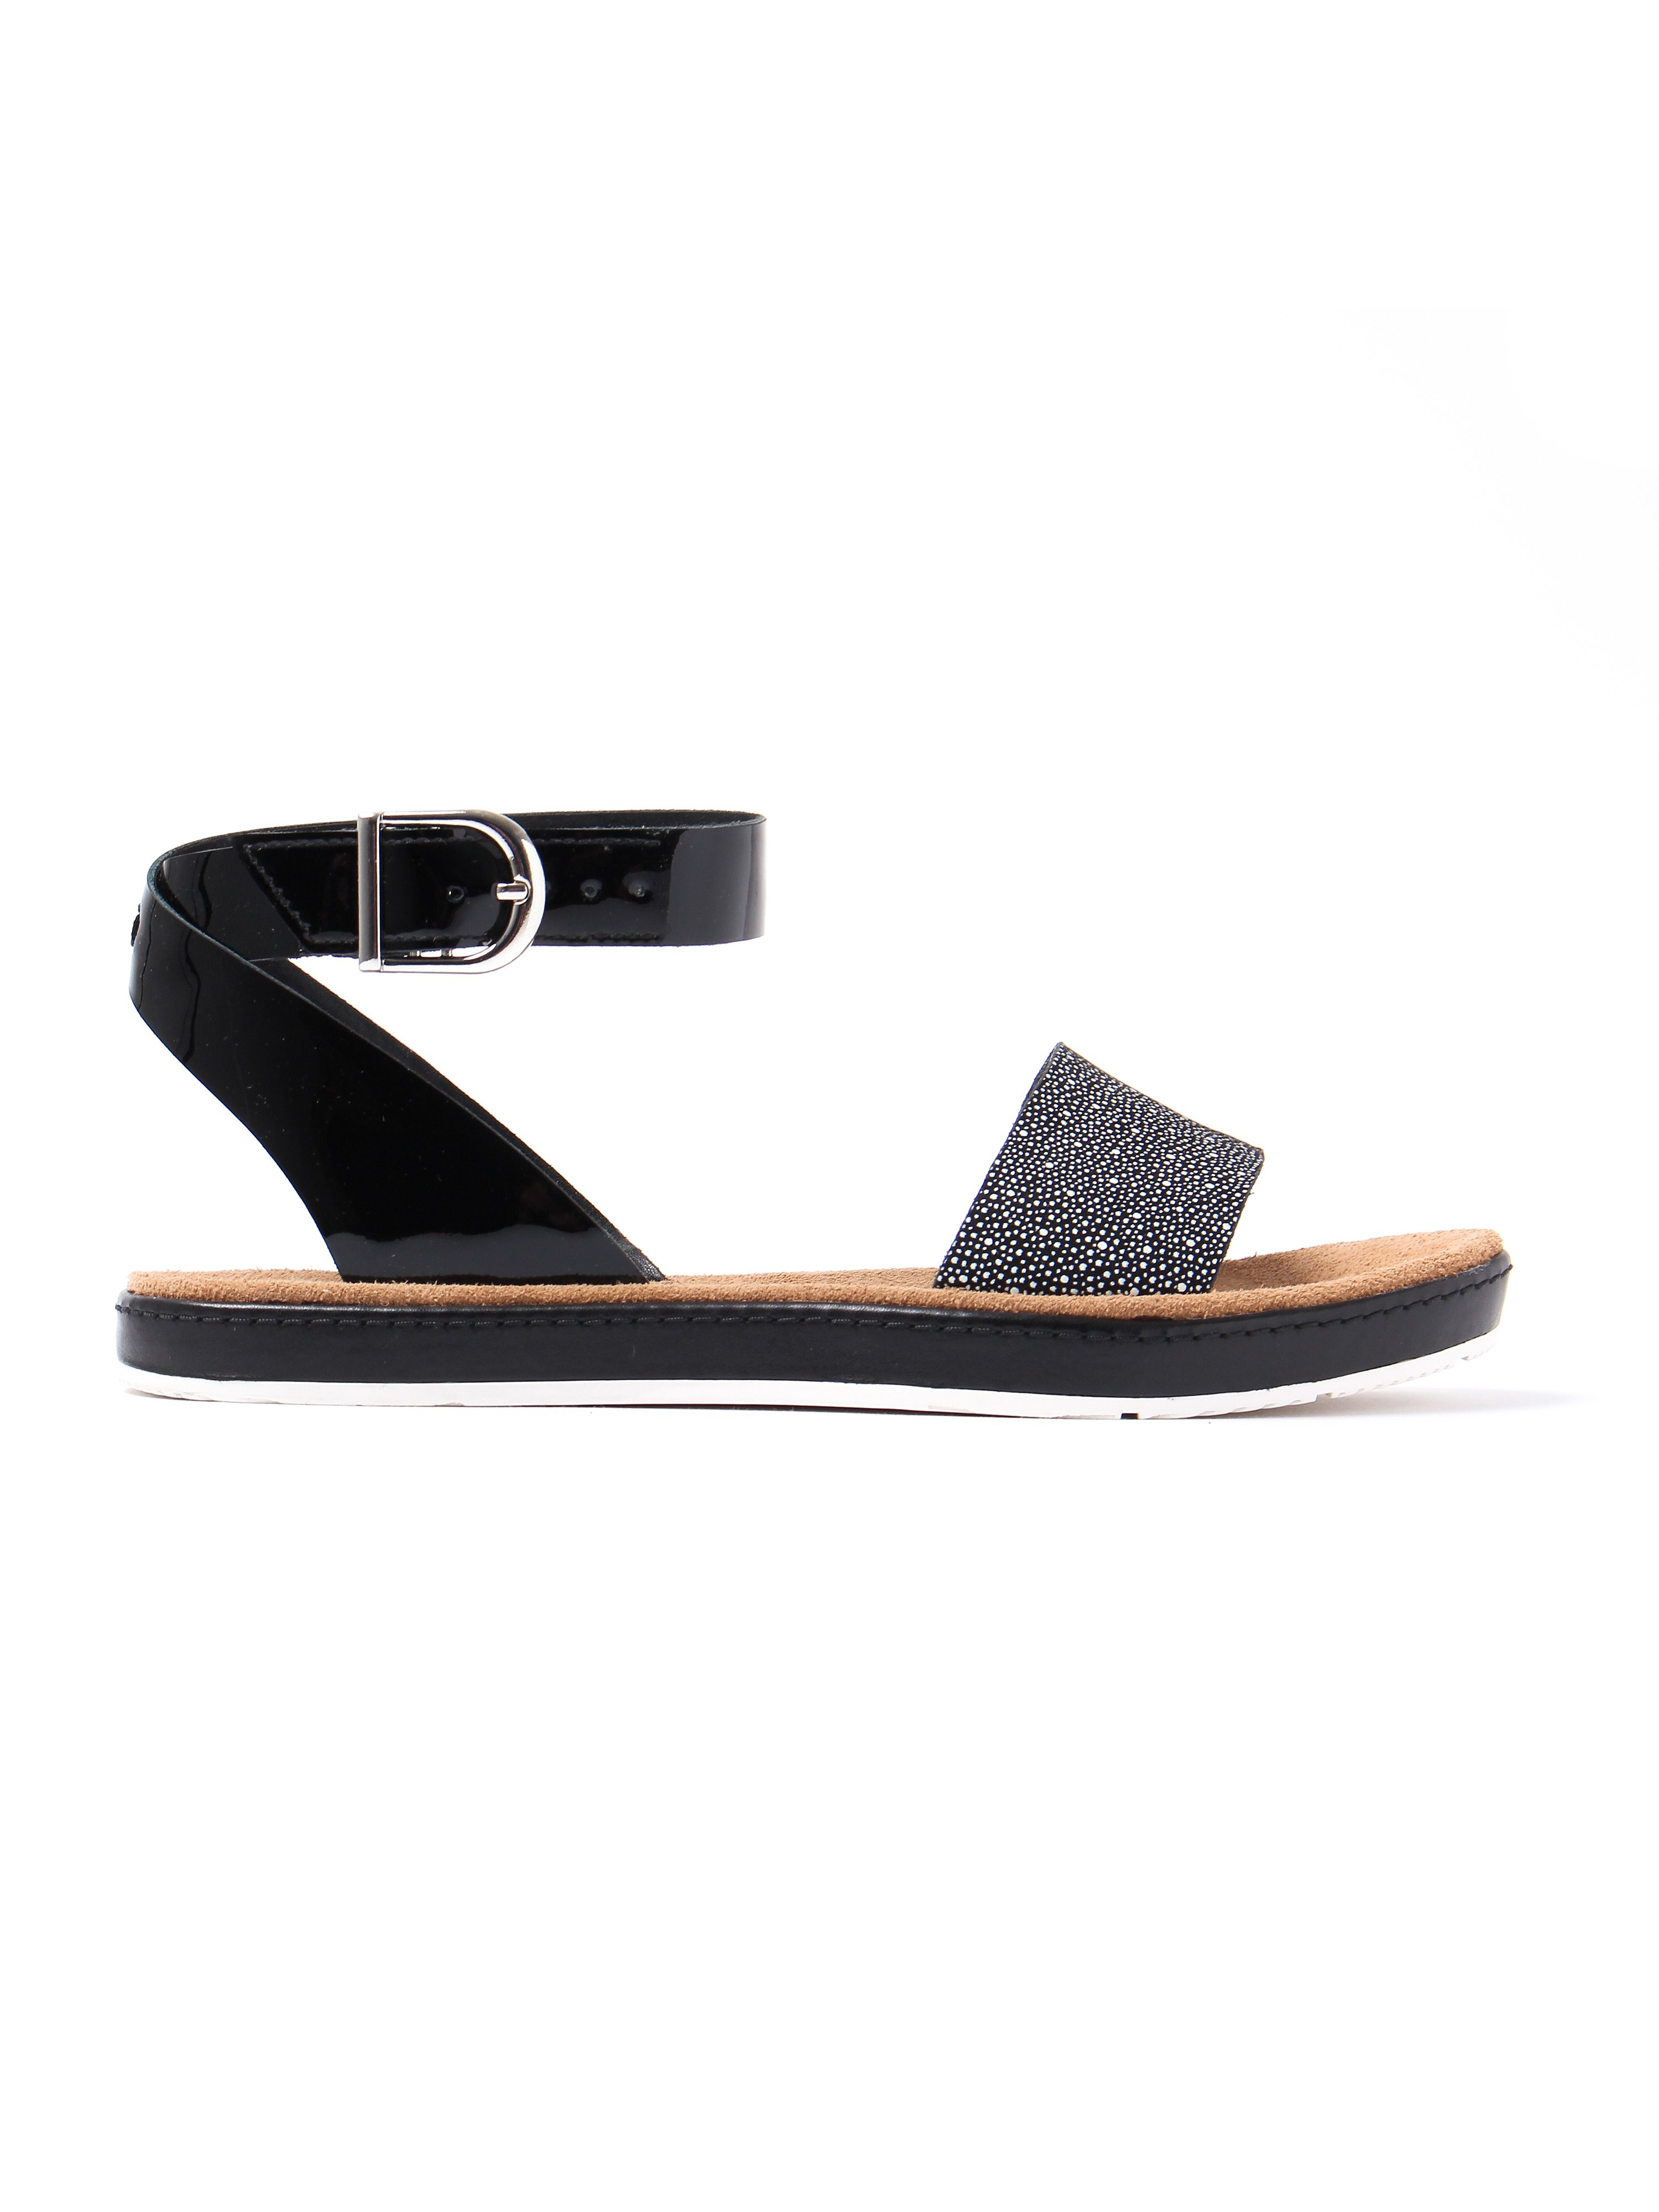 Clarks Women's Romantic Moon Combi Leather Sandals - Black